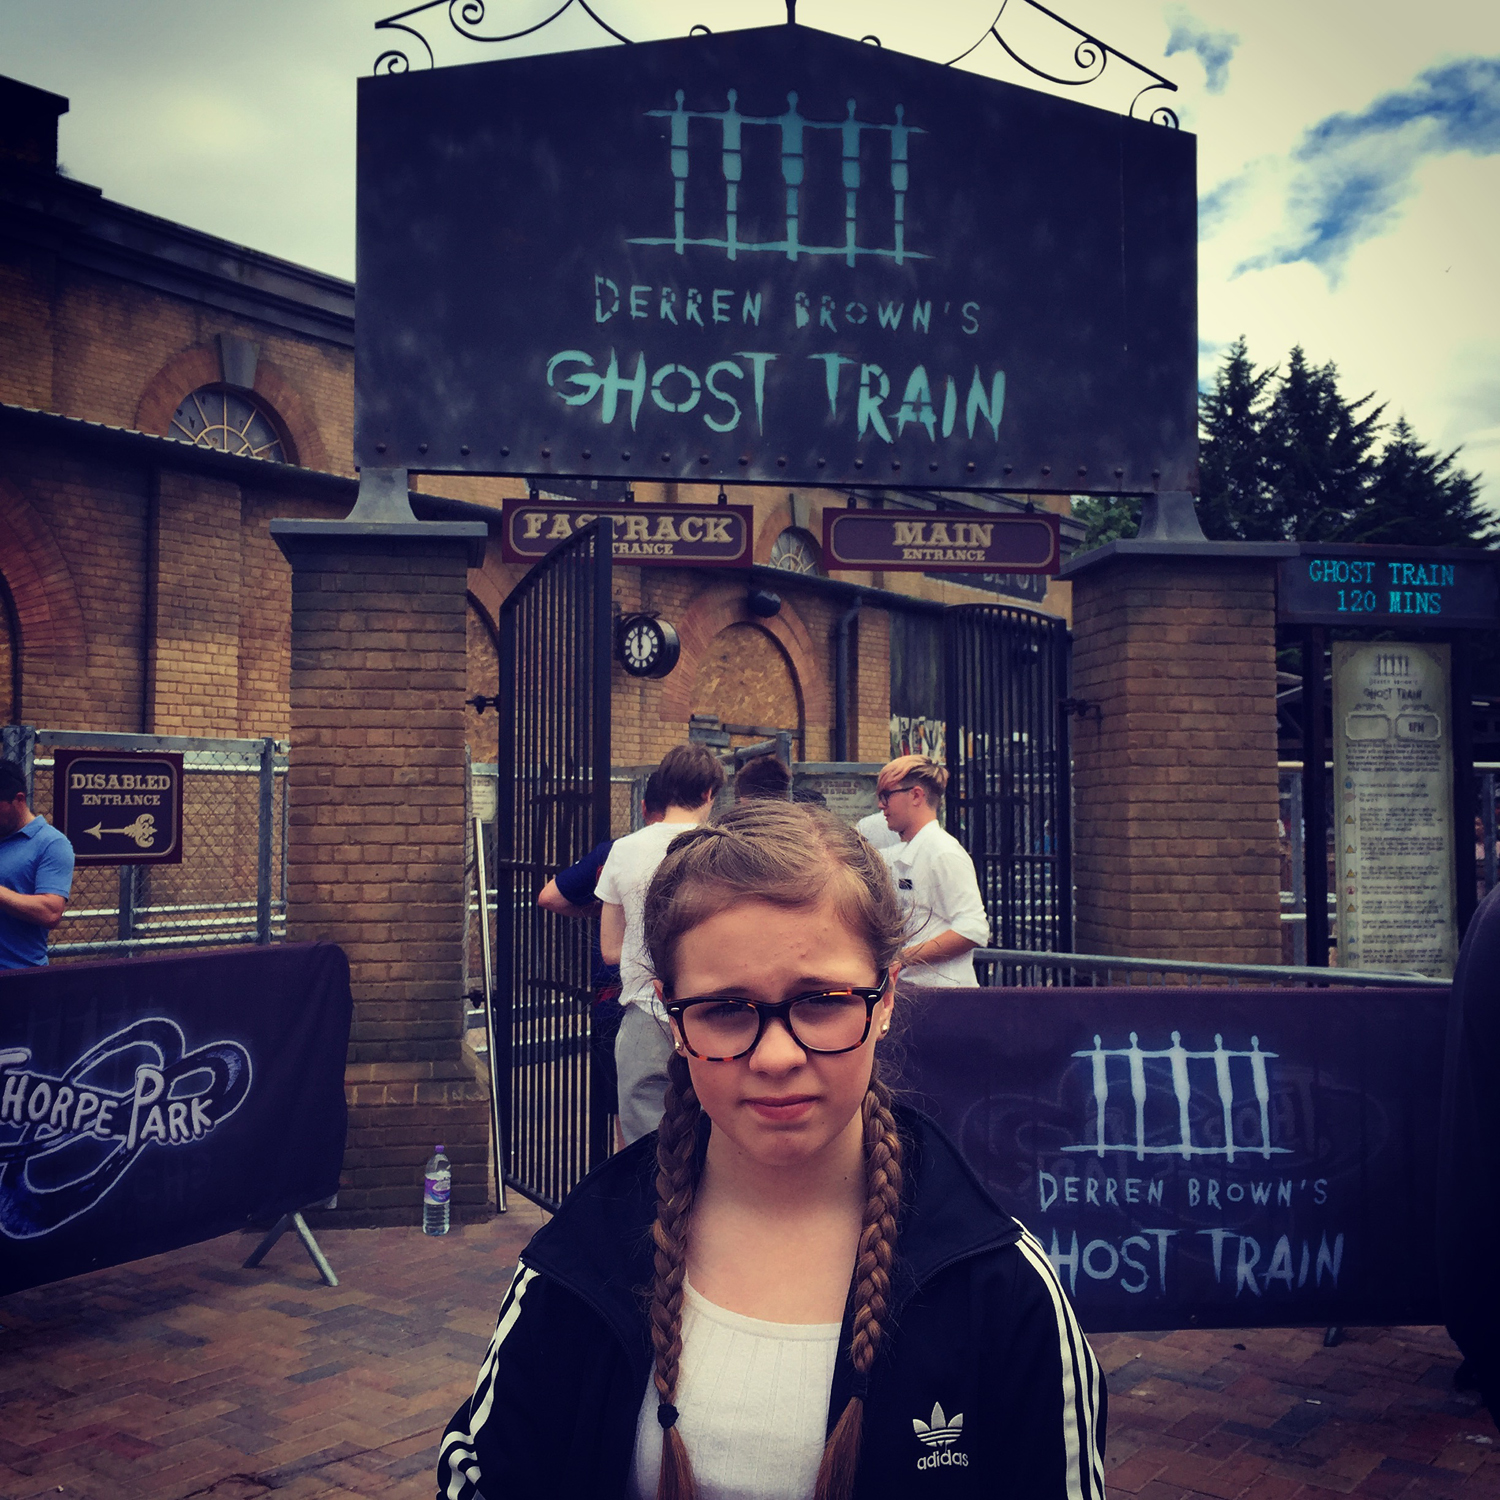 Amber a bit nervous about going on Derren Brown's Ghost Train at Thorpe Park